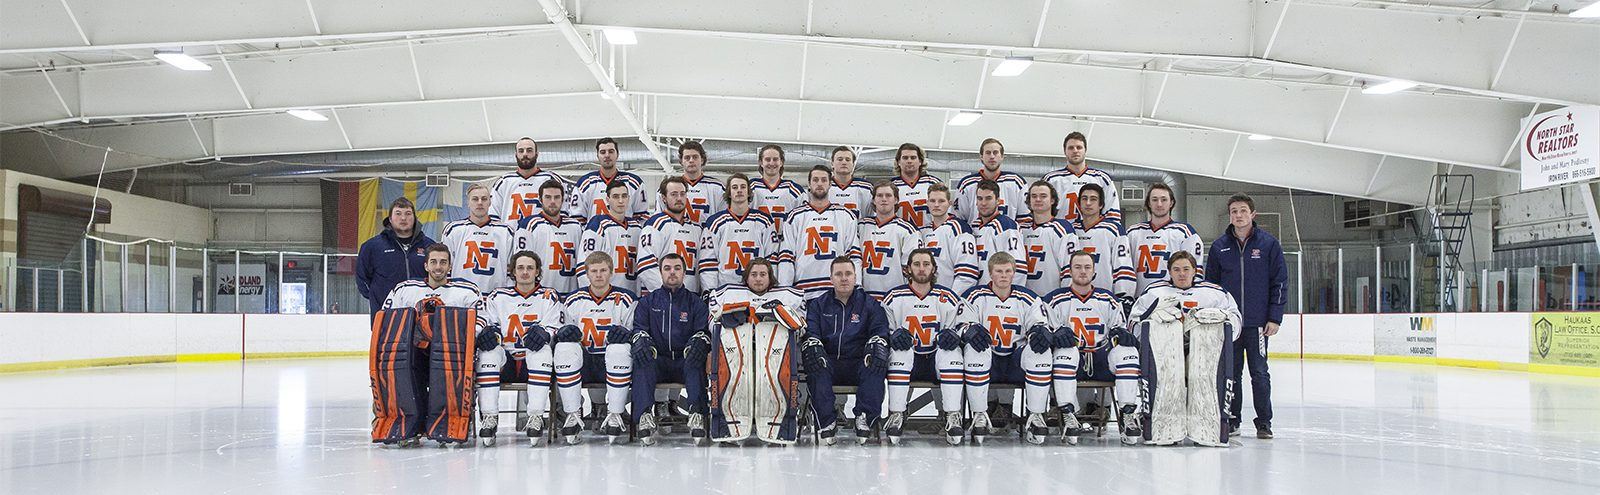 Northland College Men's Hockey Team Photo 2016-2017